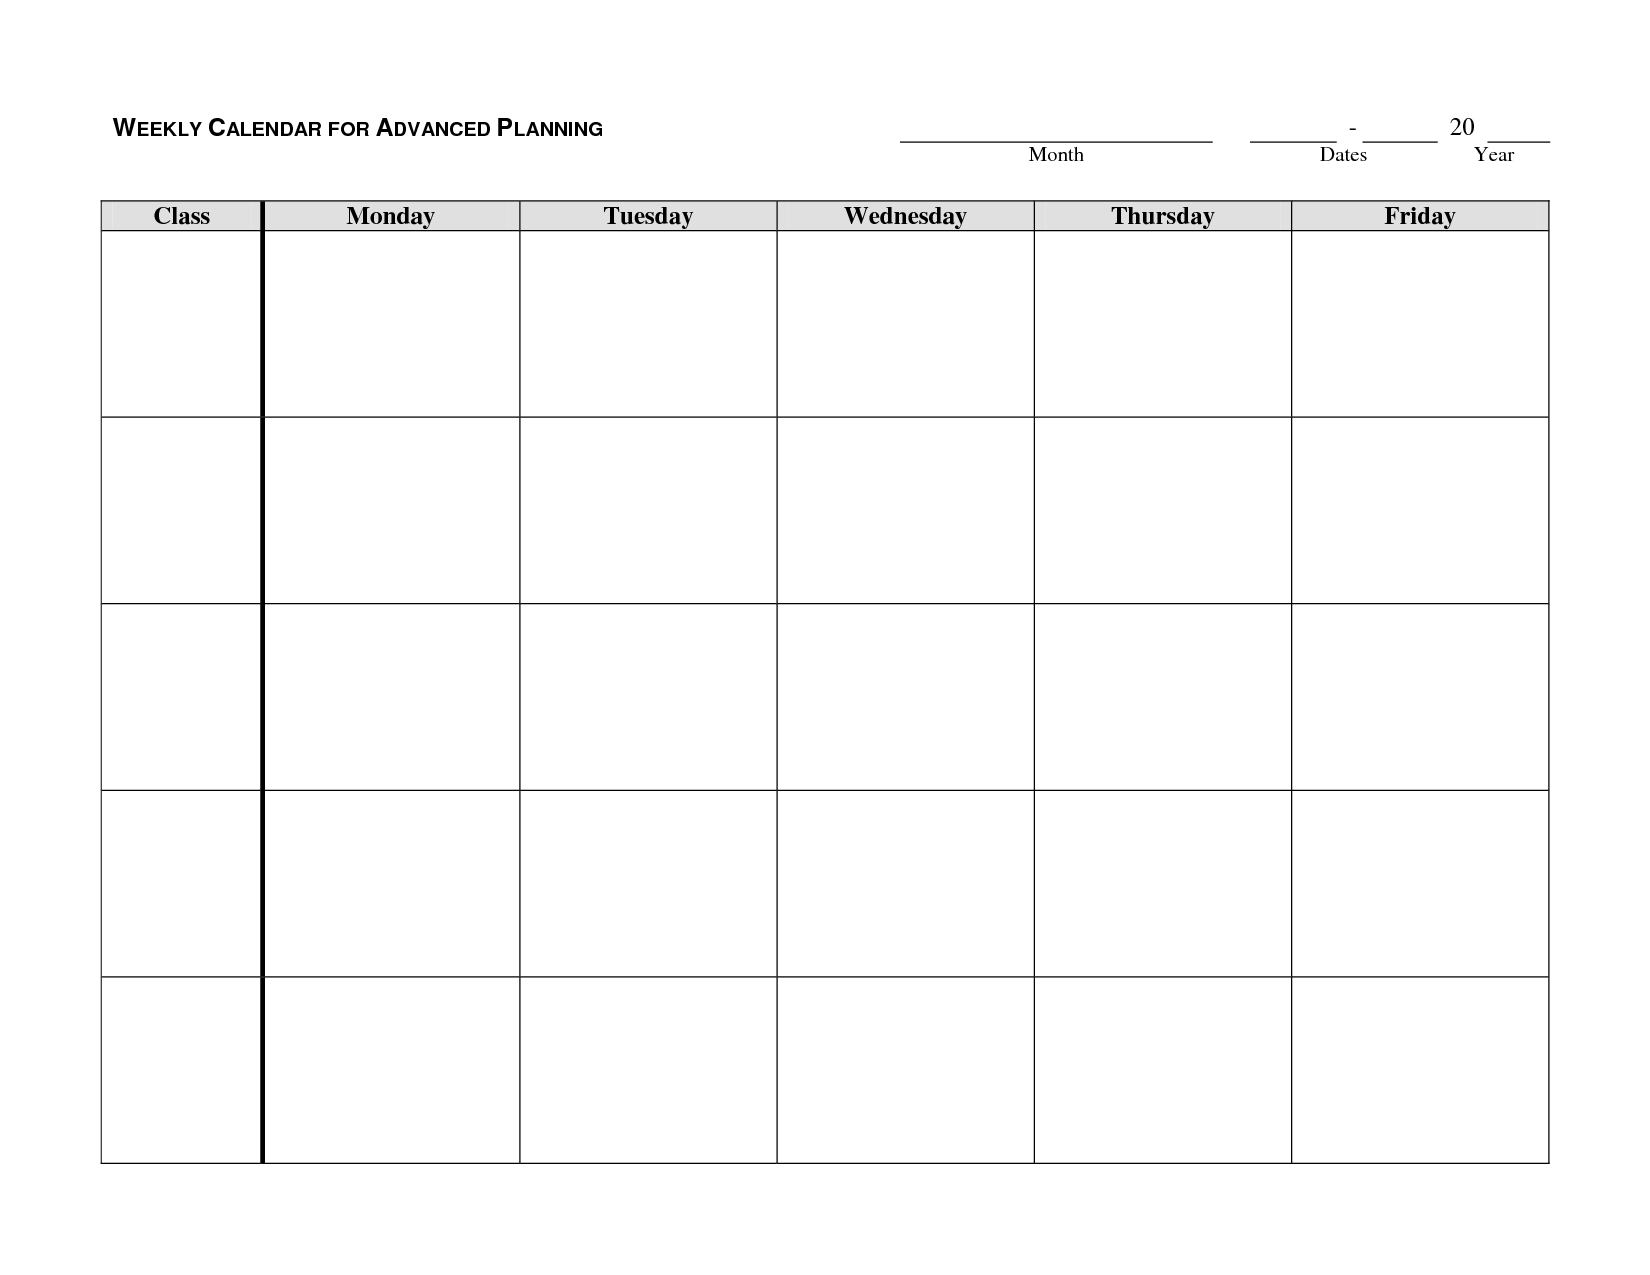 Weekly Calendar Template - Google Search | Autism/school-Monday To Friday Blank Calendar